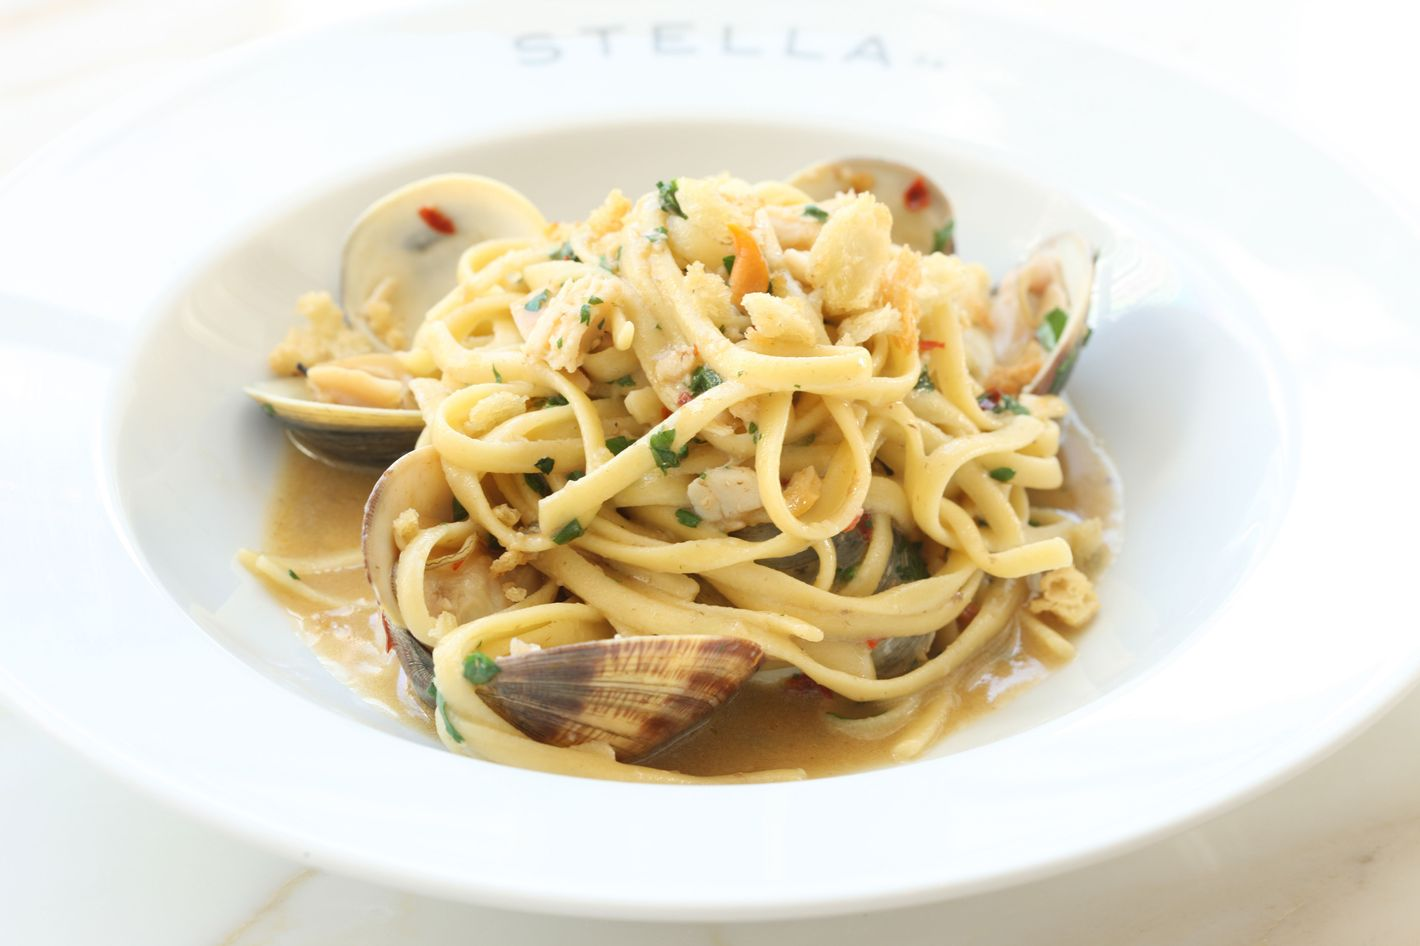 http://pixel.nymag.com/imgs/daily/grub/2013/03/06/06-stella-34-linguine-alle-vongole.jpg